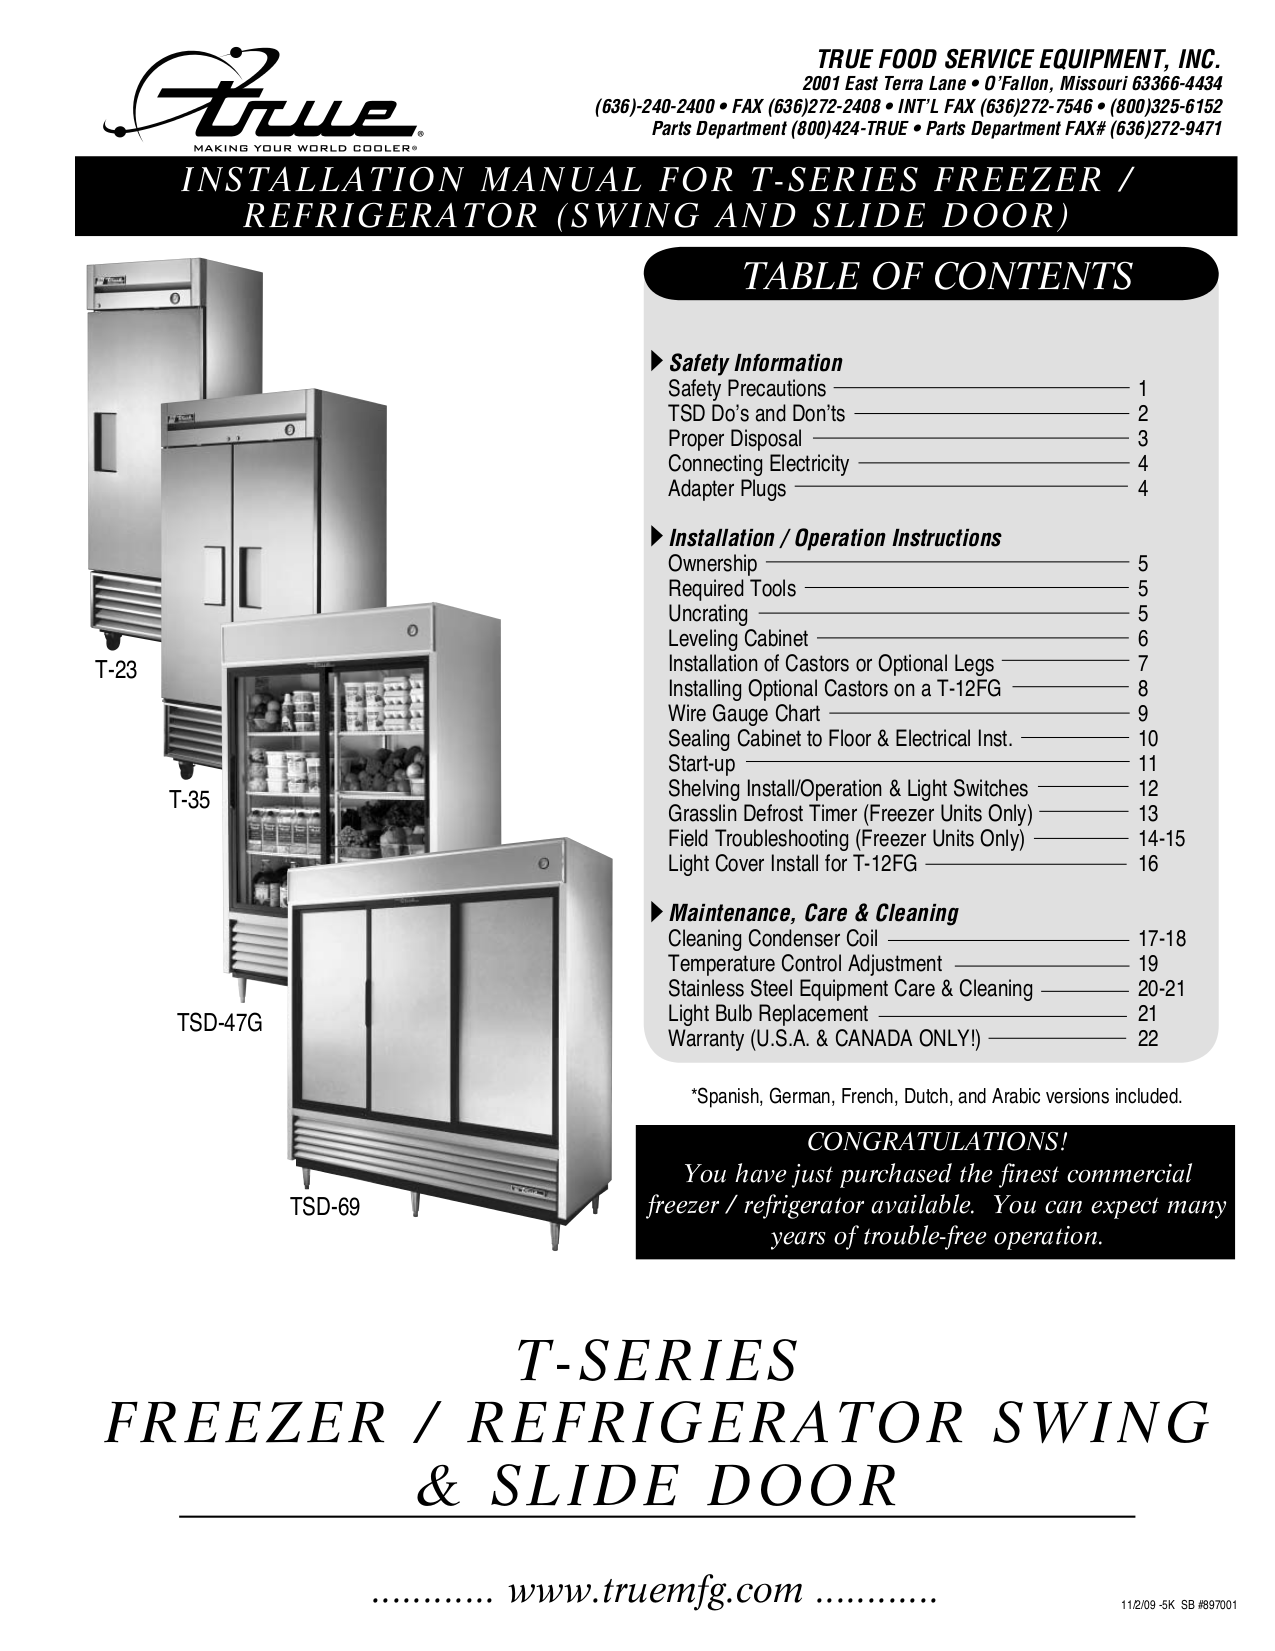 Commercial refrigeration wiring diagrams pdf somurich commercial refrigeration wiring diagrams pdf excellent commercial refrigeration wiring diagrams ideas rhthetada asfbconference2016 Gallery